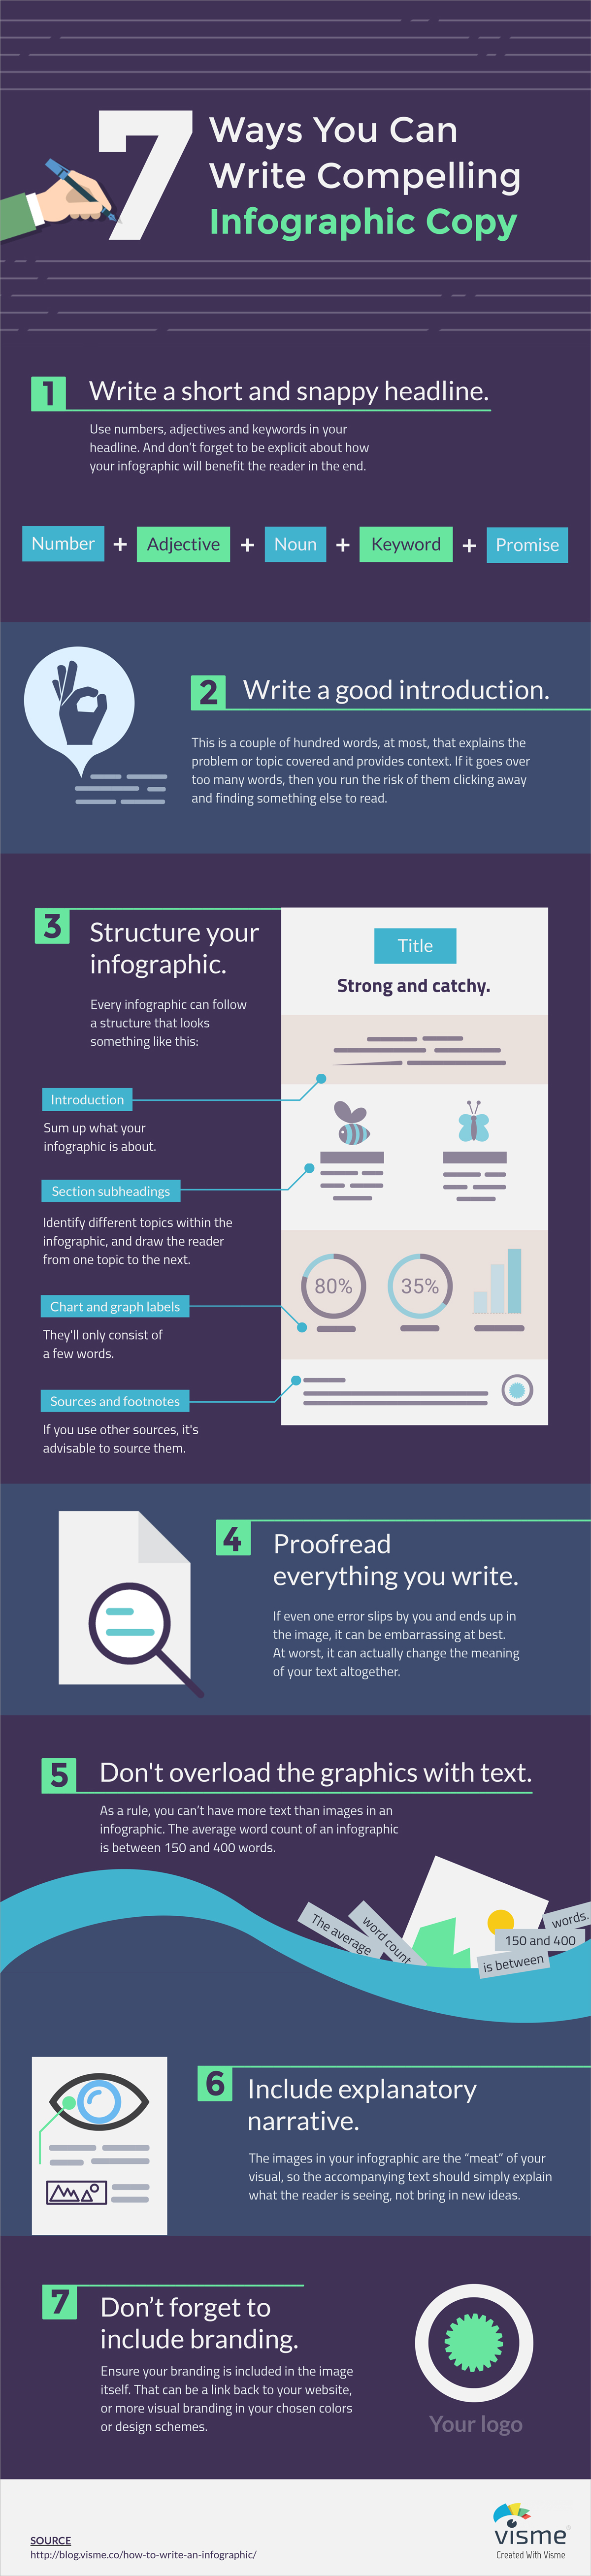 7 Steps to Writing Compelling Infographic Copy [Infographic